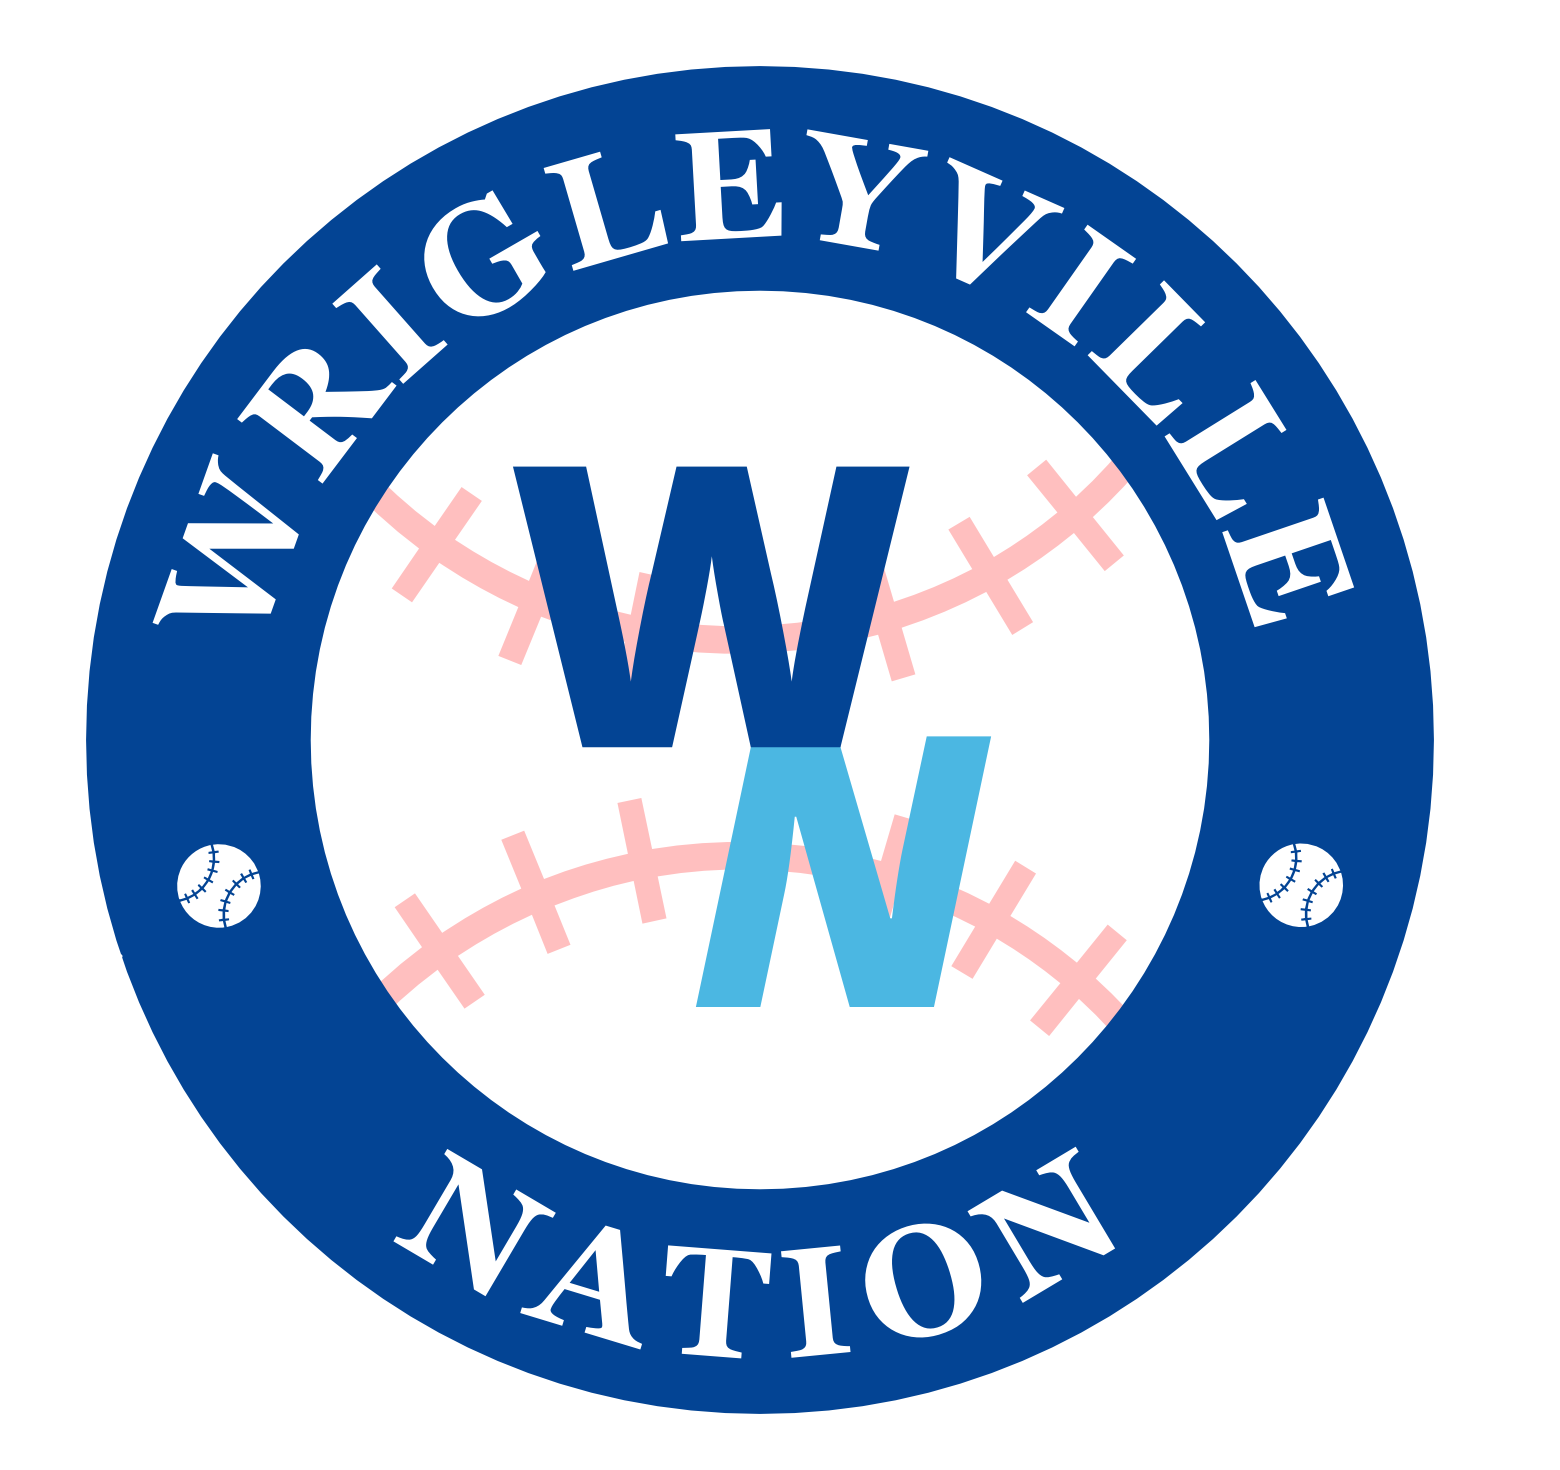 Wrigleyville Nation Ep 225 - Guest: Paul Noonan, Brewers Preview, Cubs Concerns, Season Preview show art